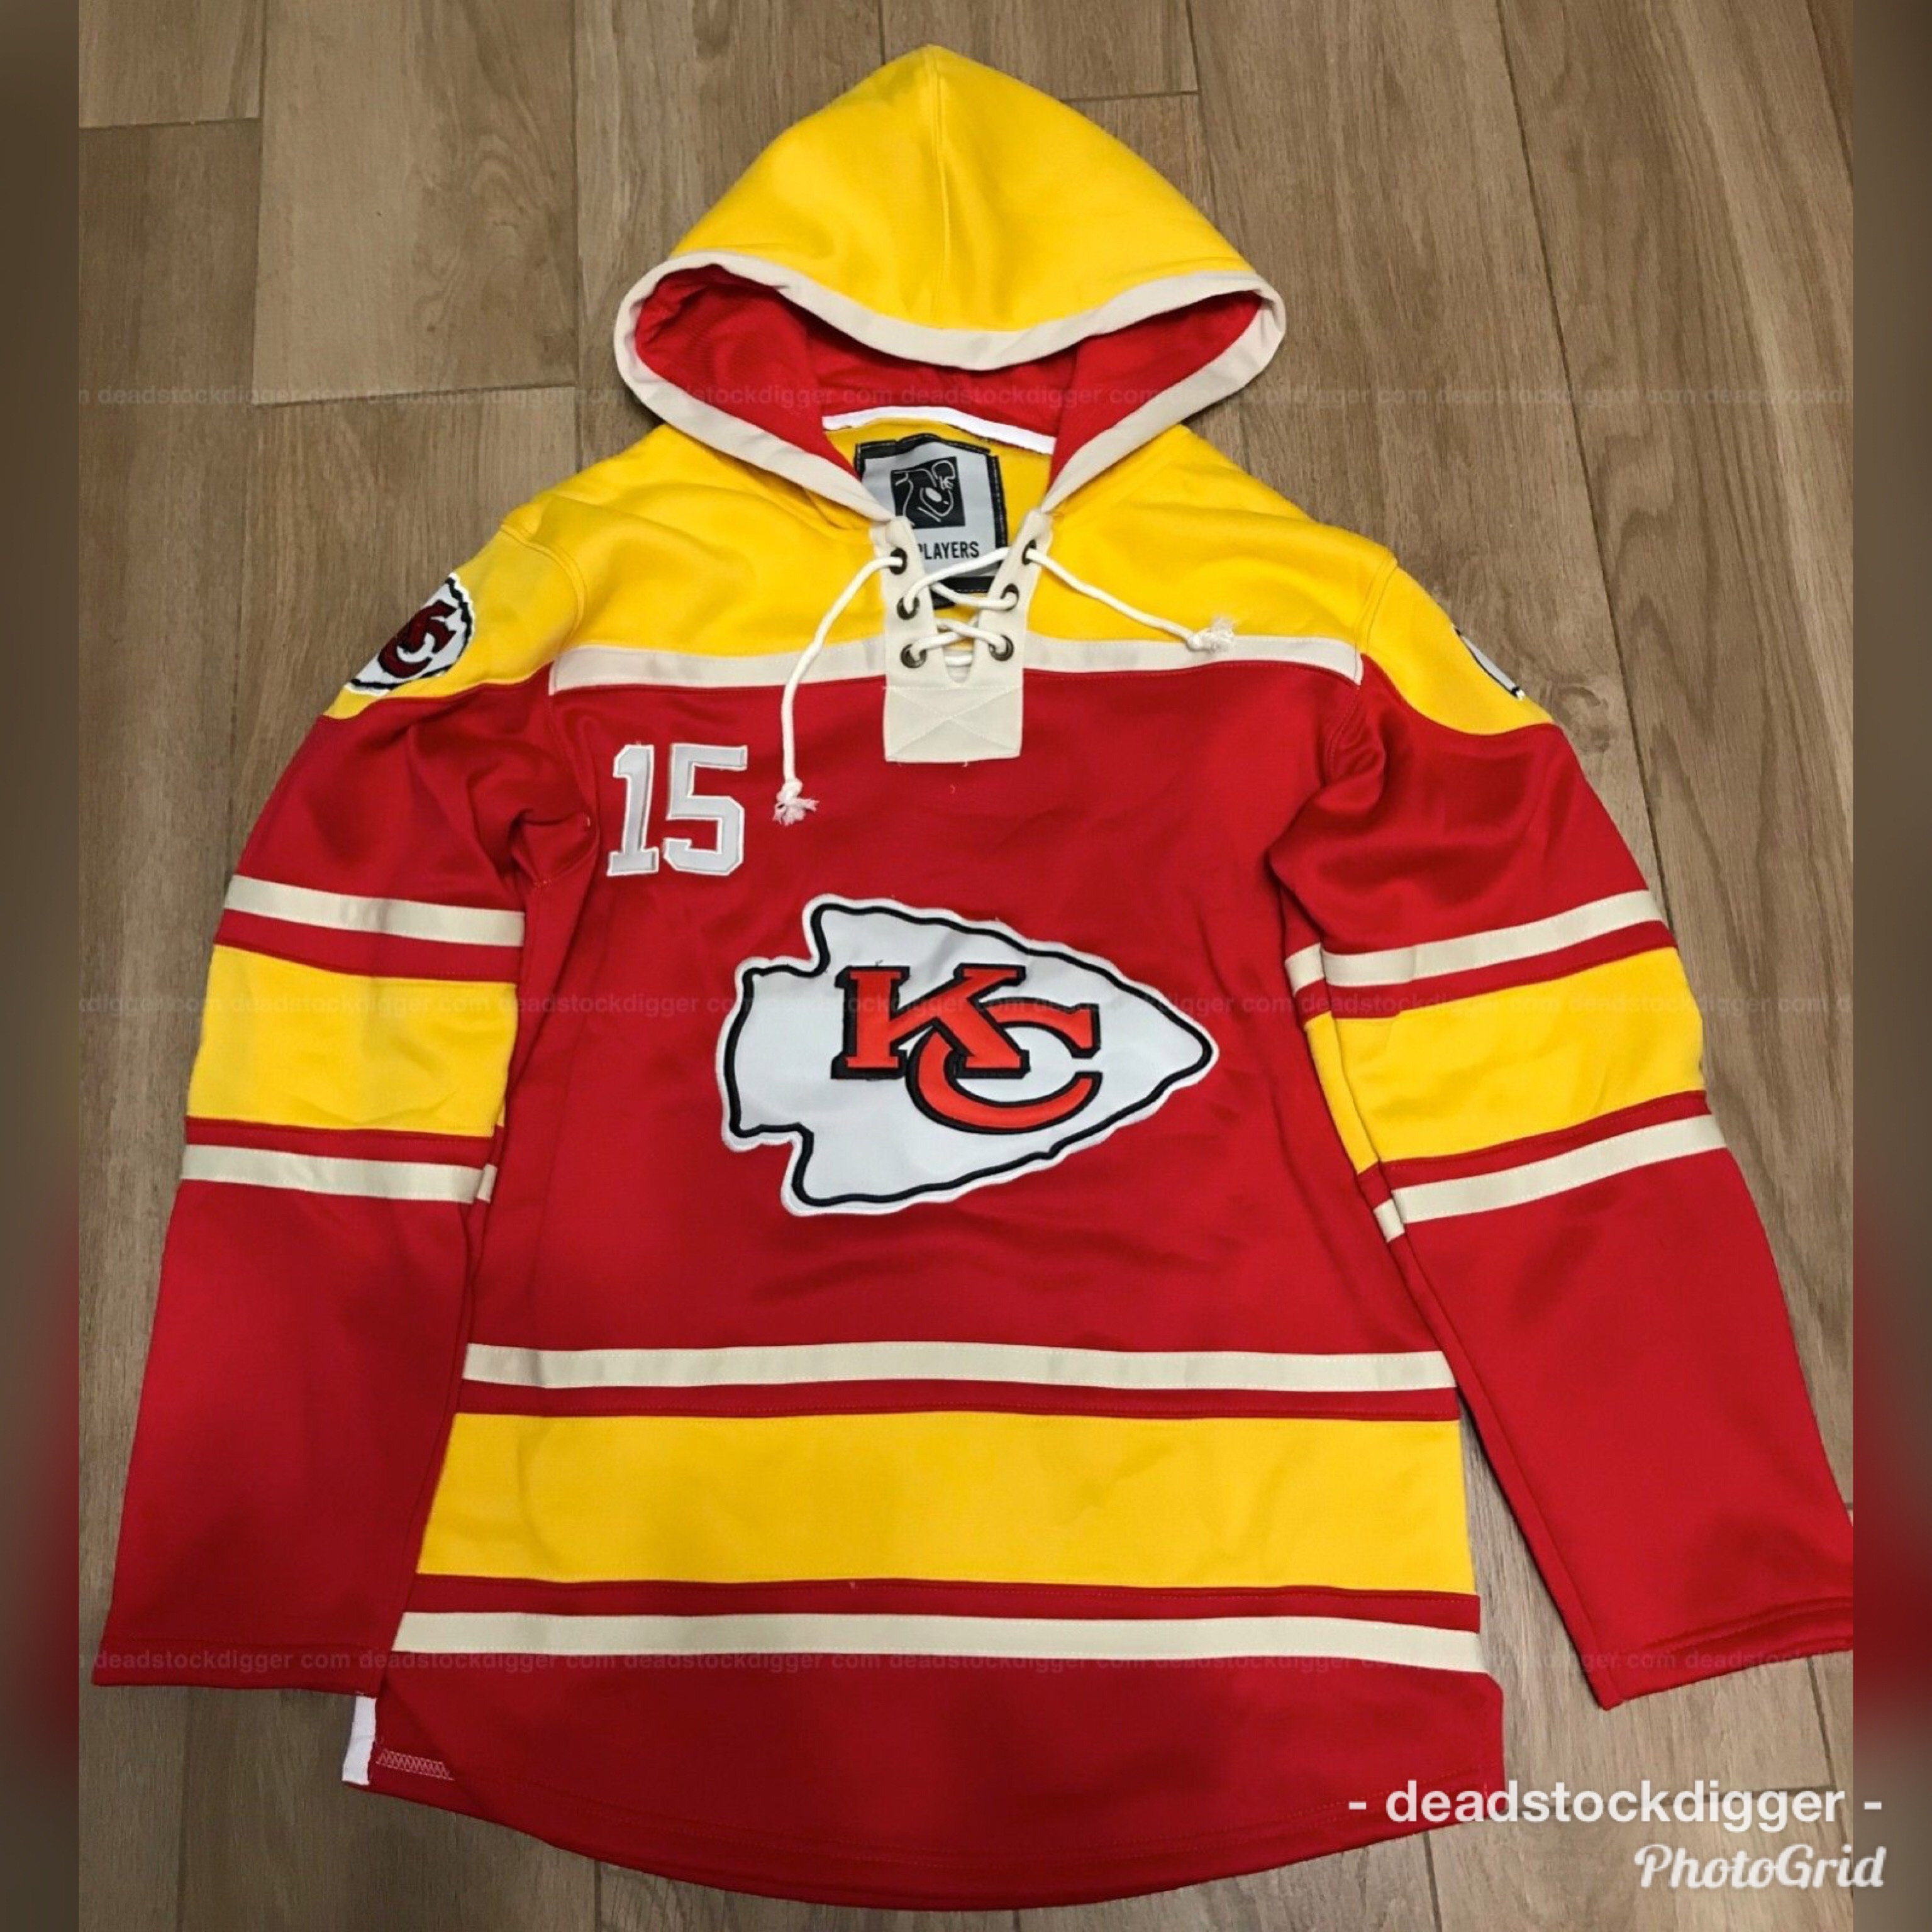 detailed look 183c9 d368c Patrick Mahomes Kansas City Chiefs Stitched Jersey Hoodie